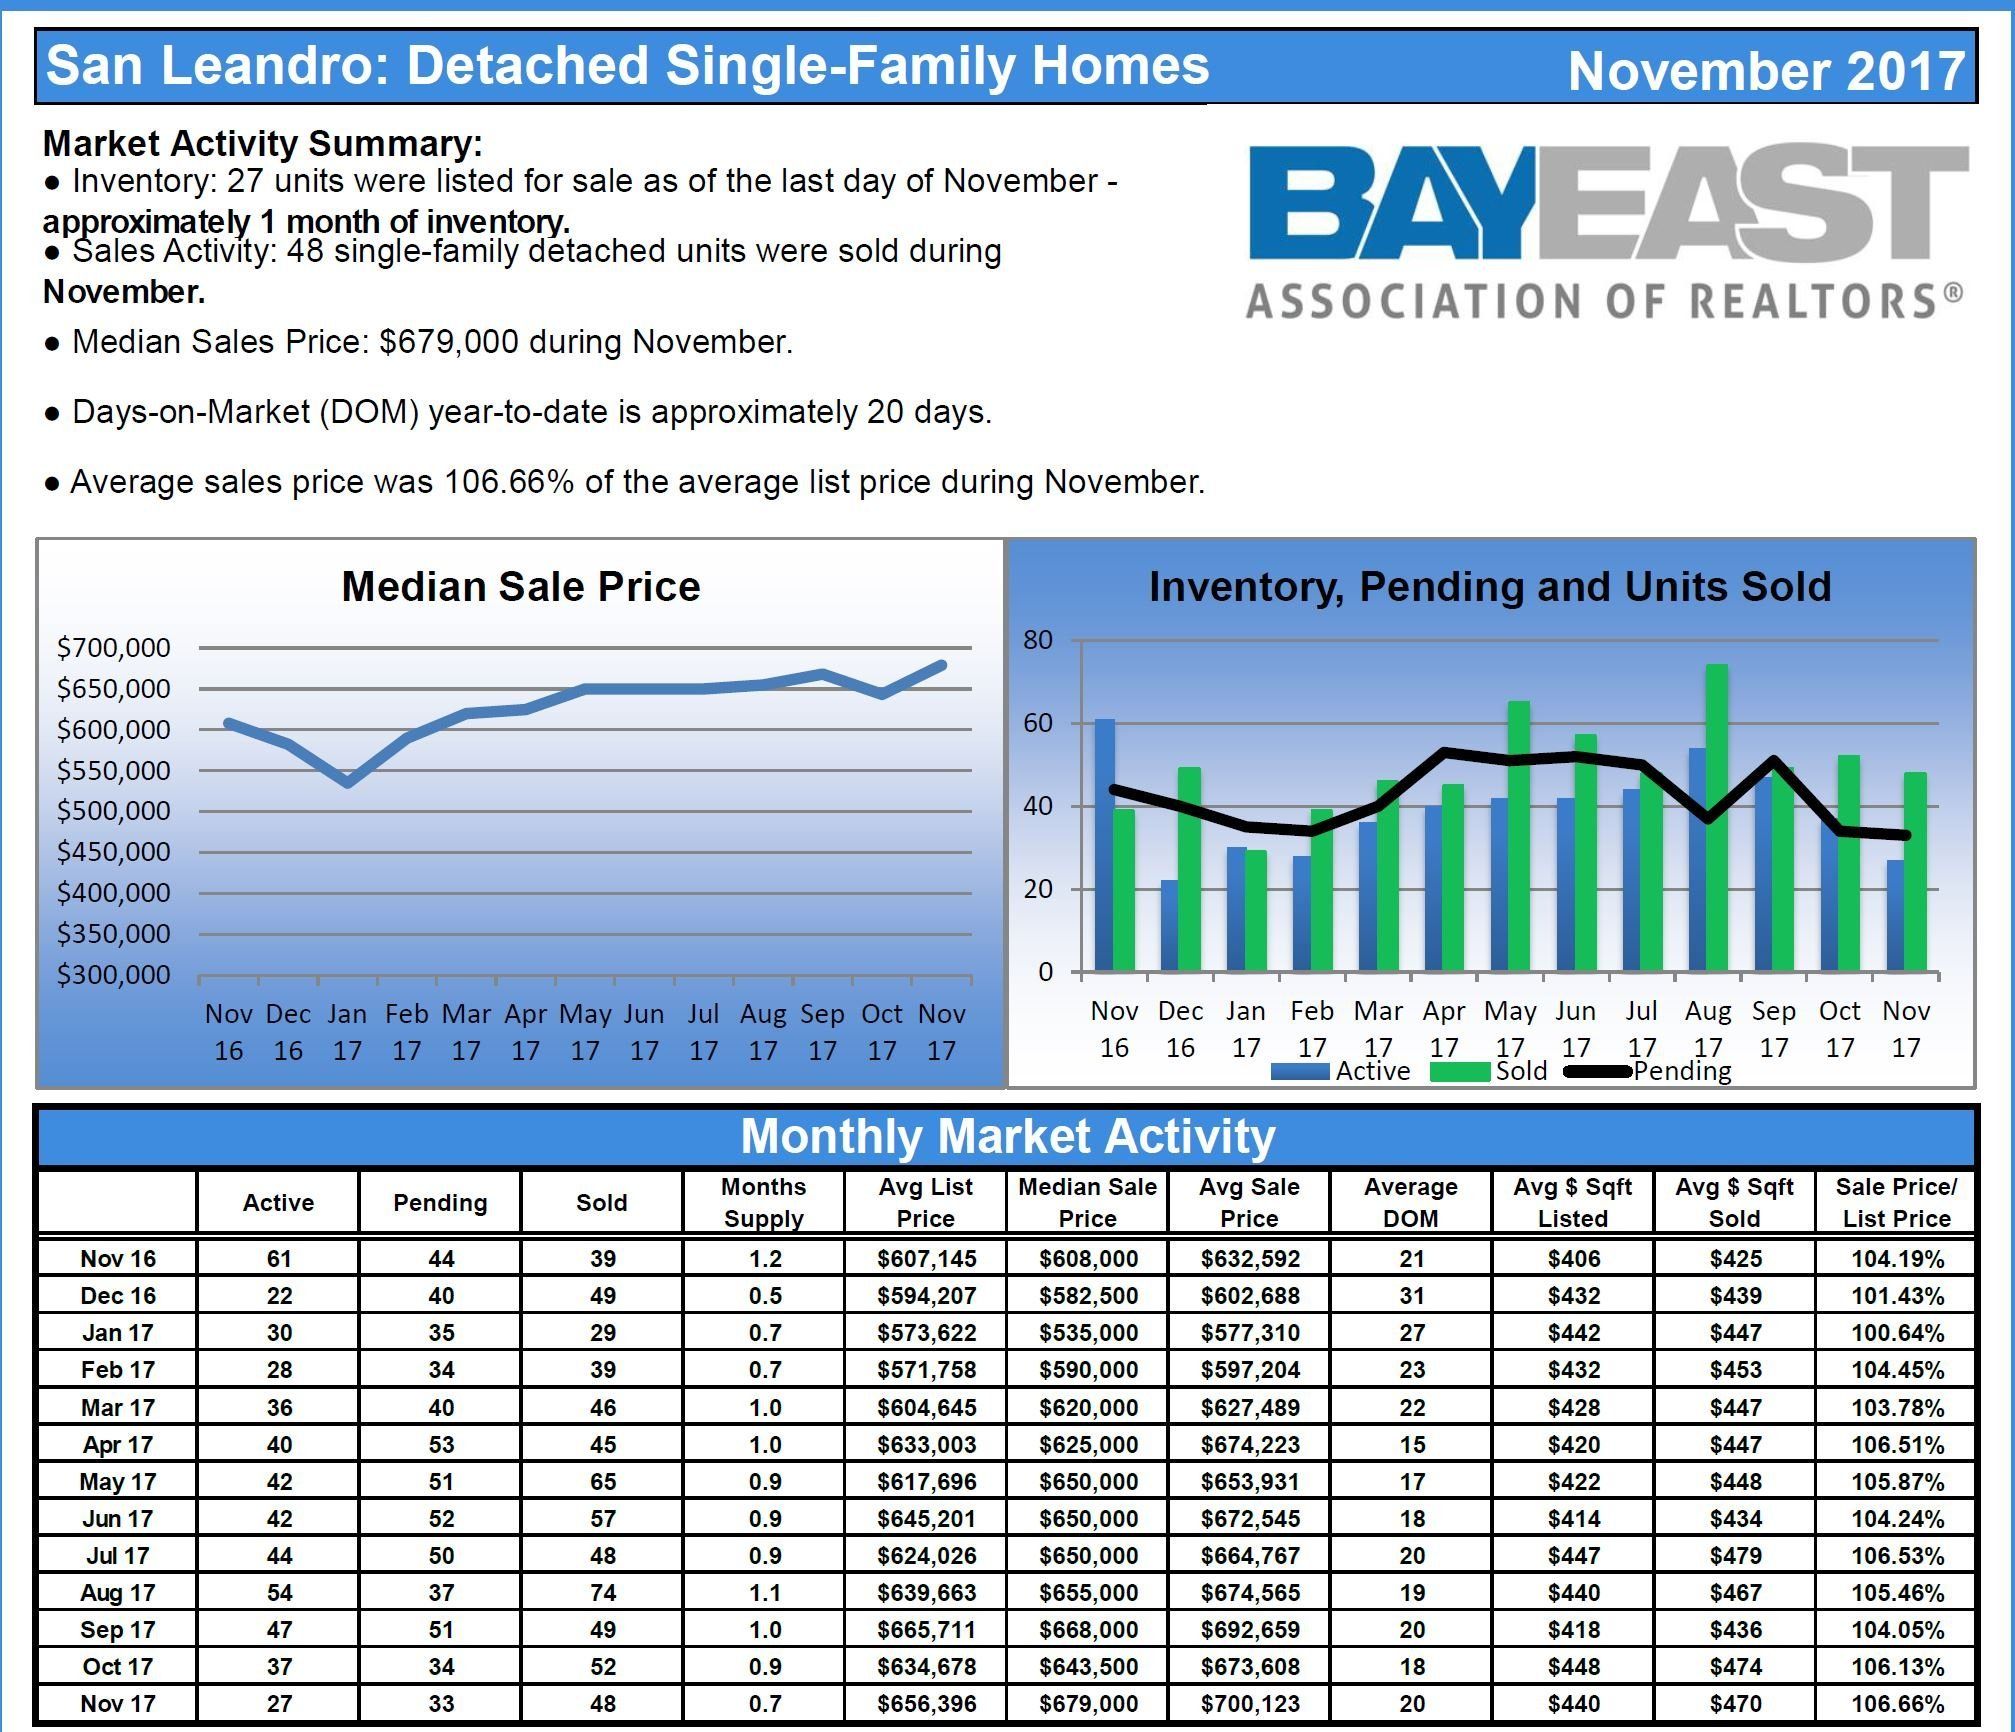 San Leandro Single-Family Homes Report November 2017